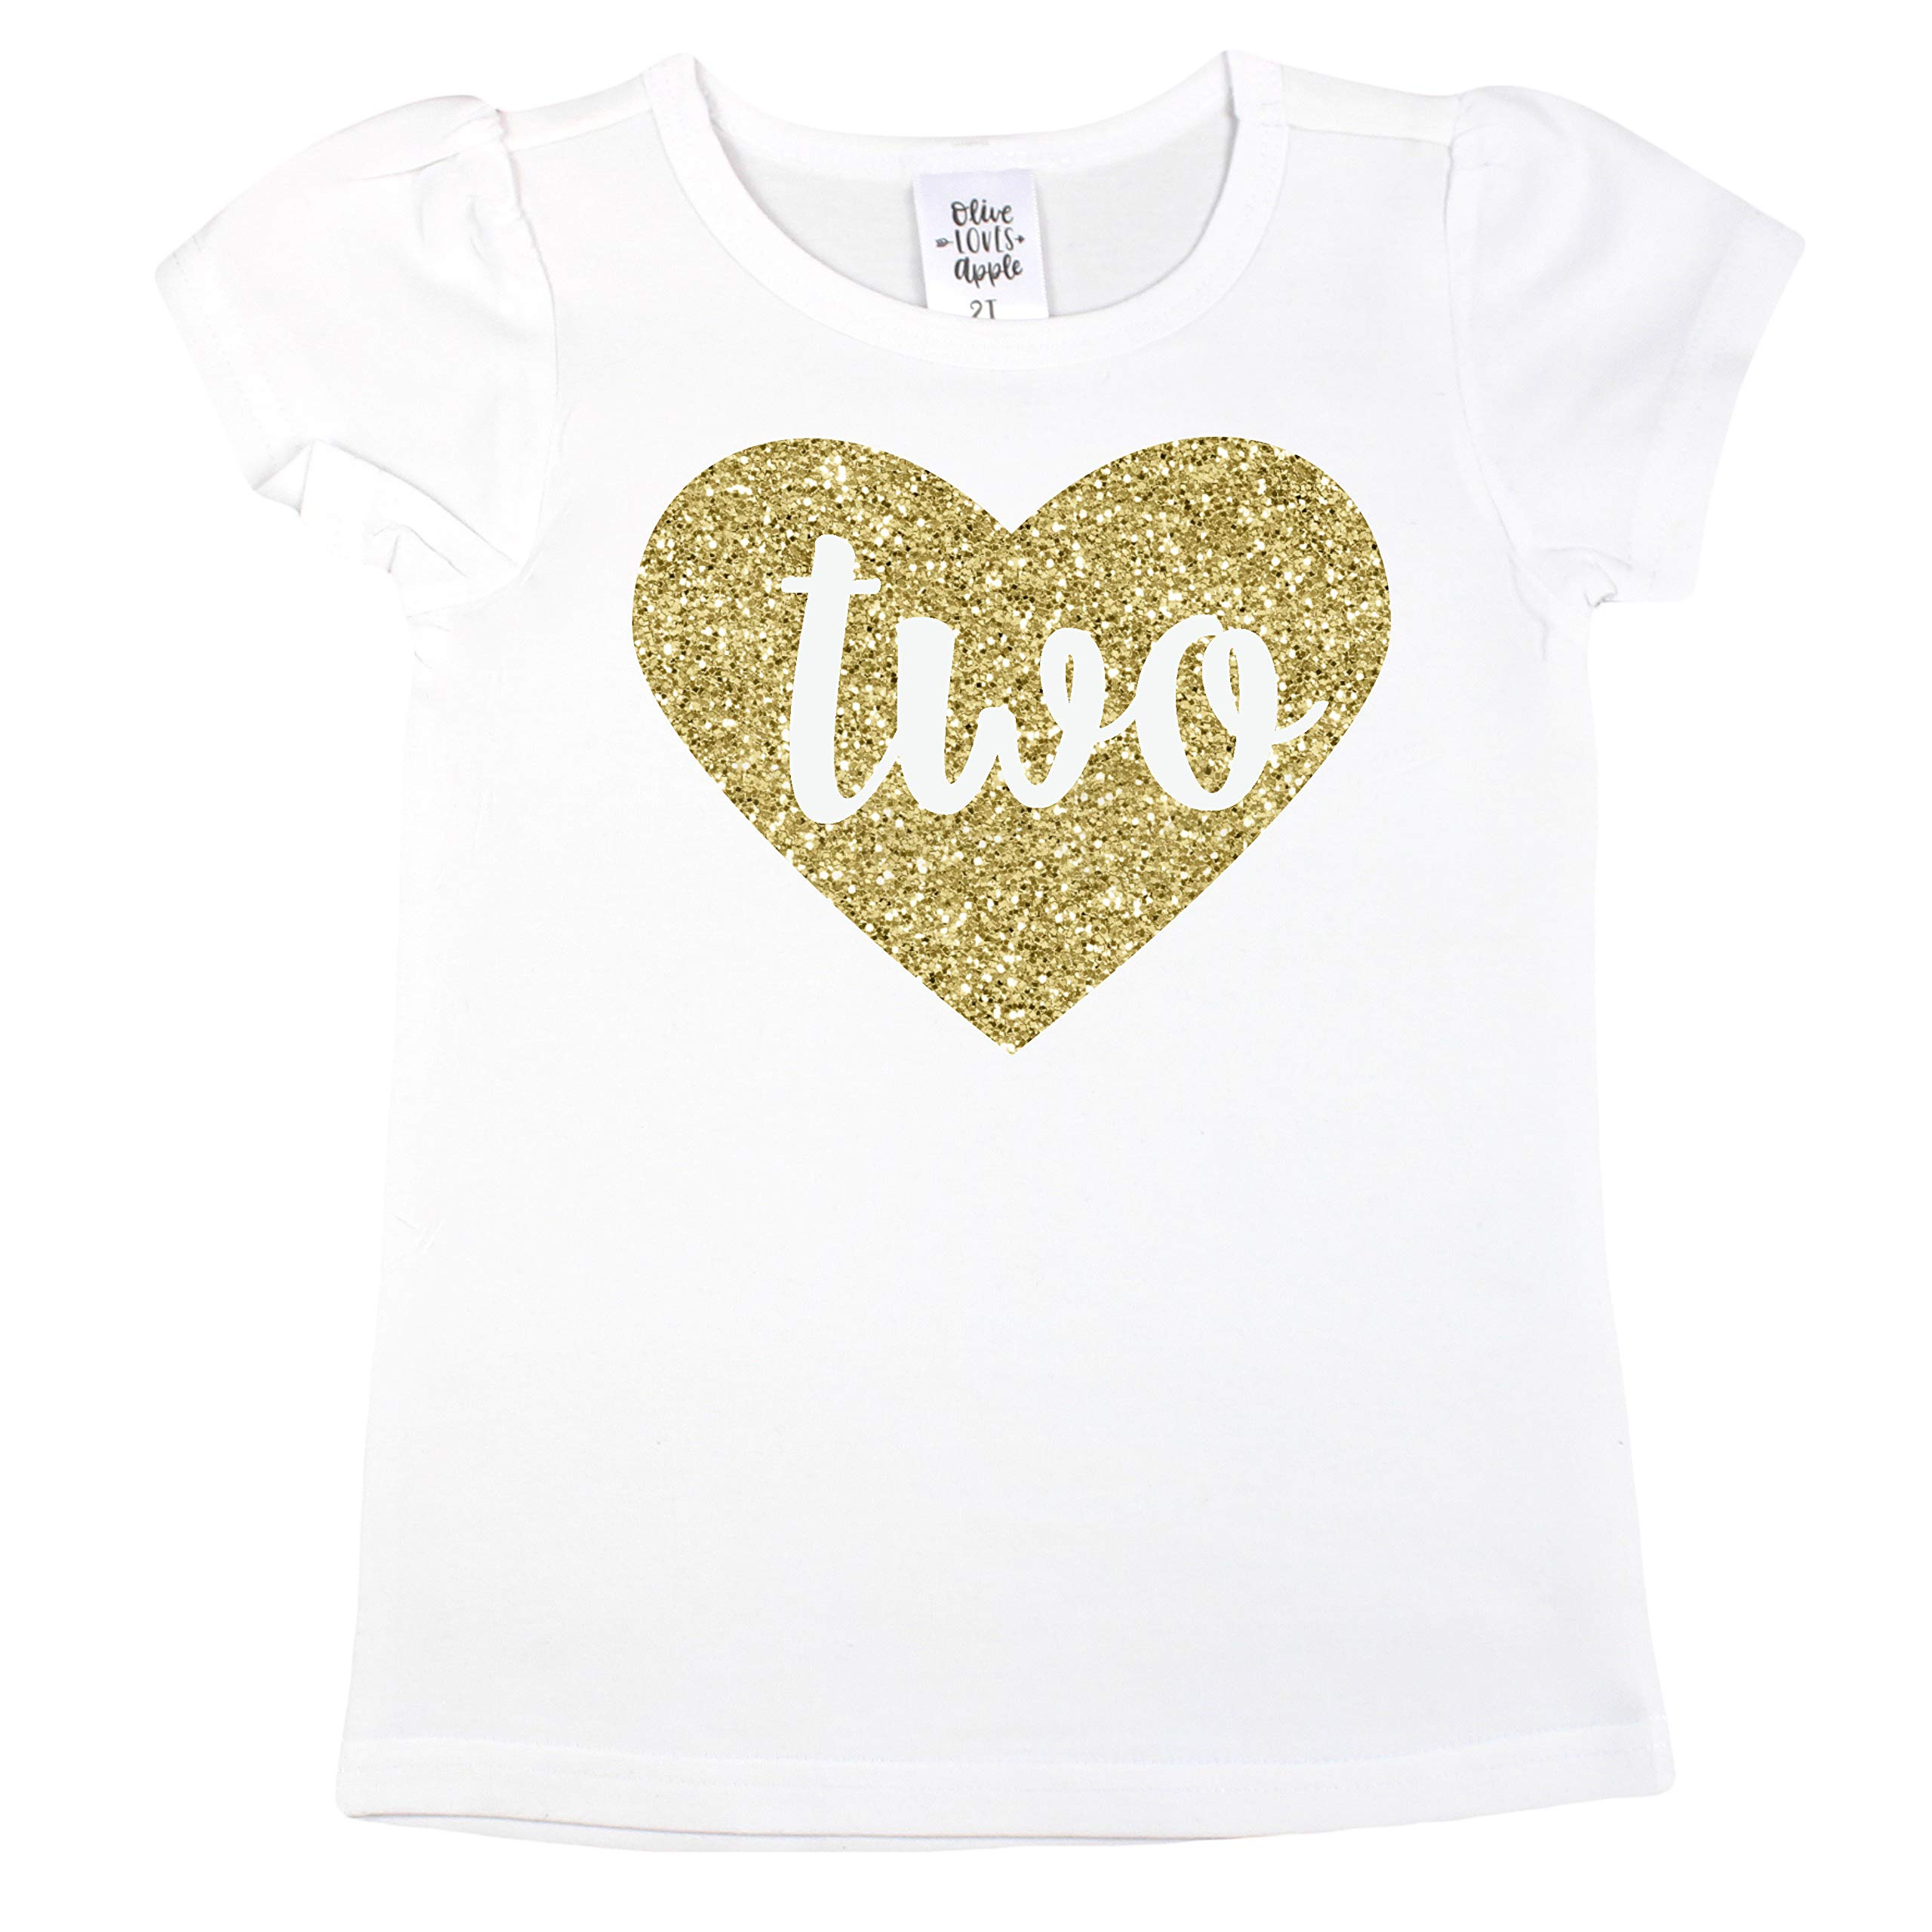 Girls 2nd Birthday Shirt Glitter Gold Two in Heart Second Birthday Shirt for Baby Girls,2T Short Sleeve,Gold